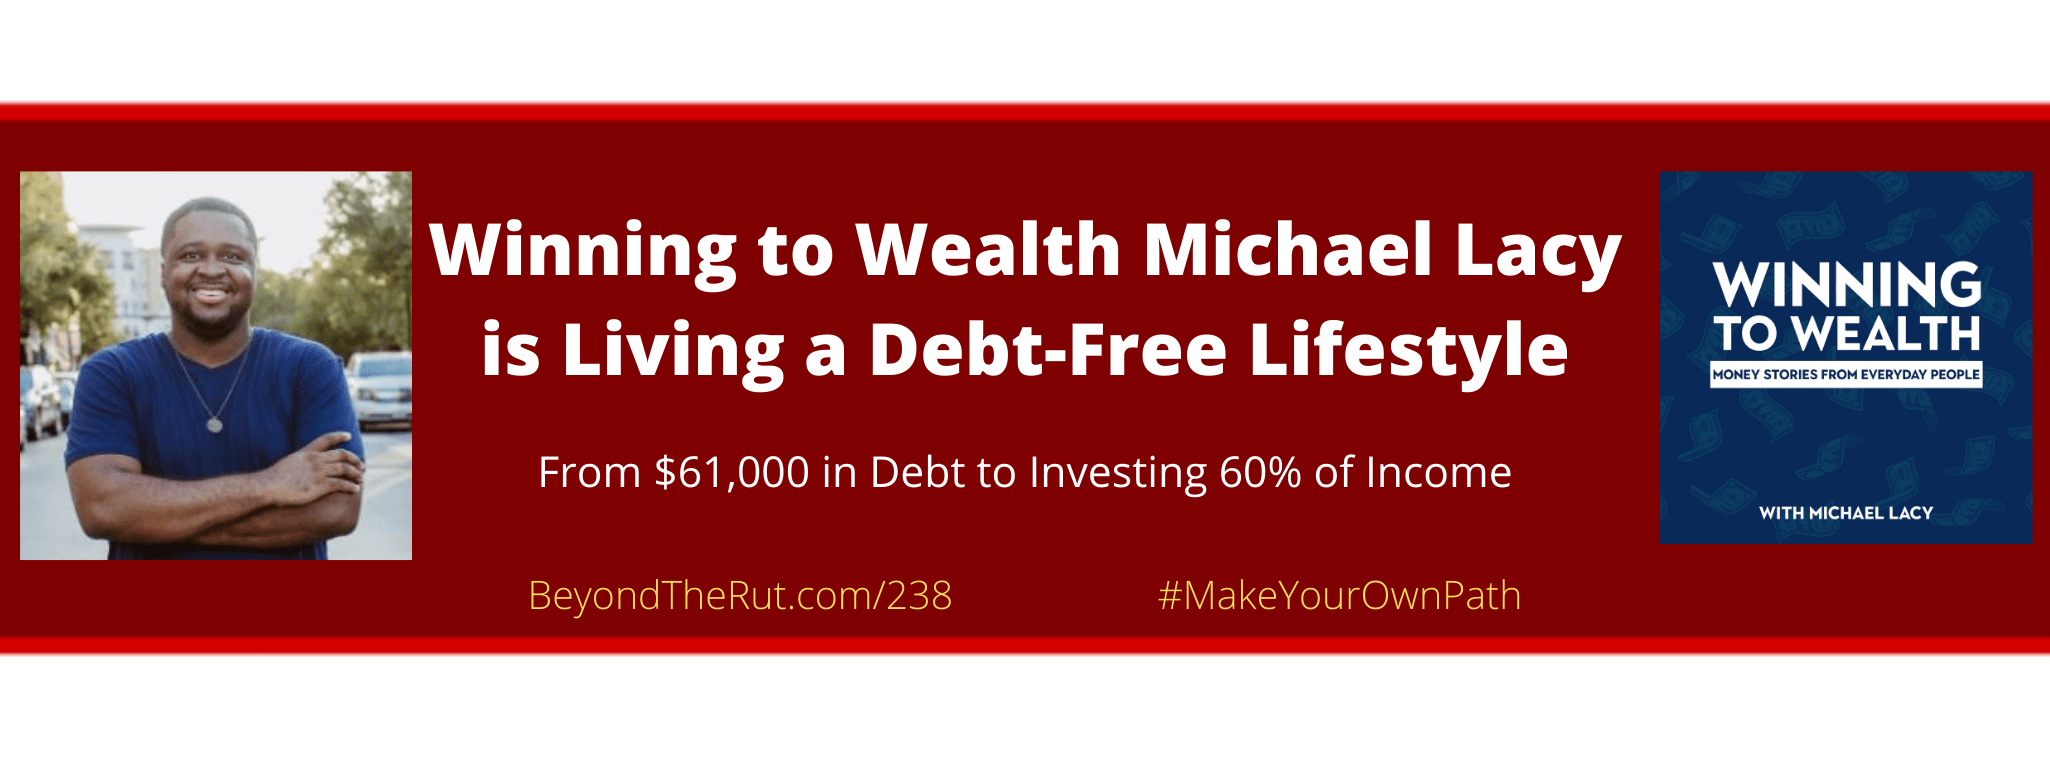 Michael Lacy and Debt-Free Lifestyle